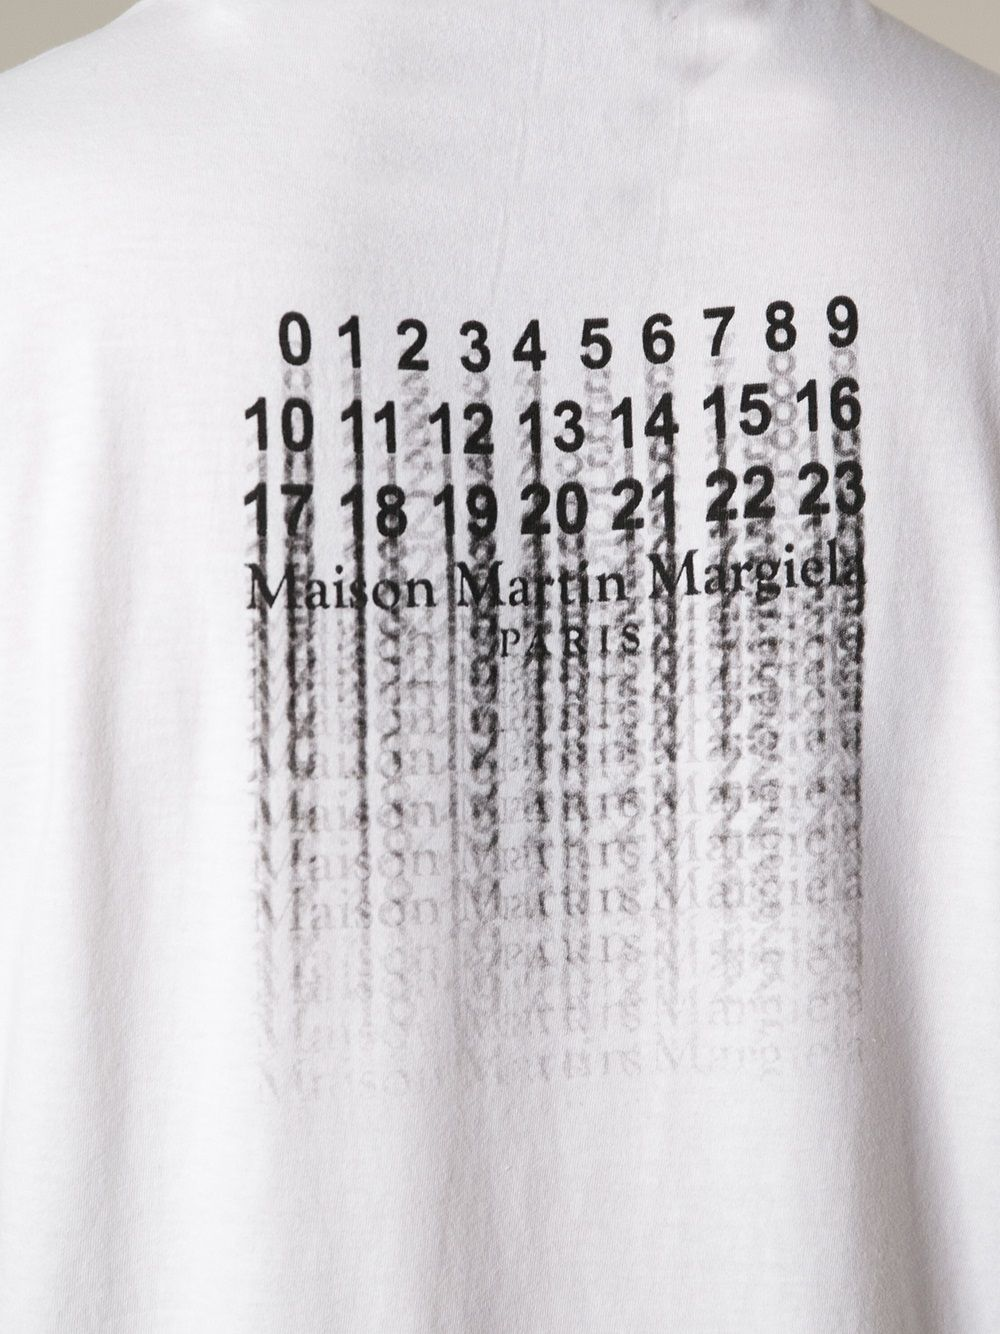 8c2cd80ca5f92 Maison Margiela Faded Print Tshirt in White for Men